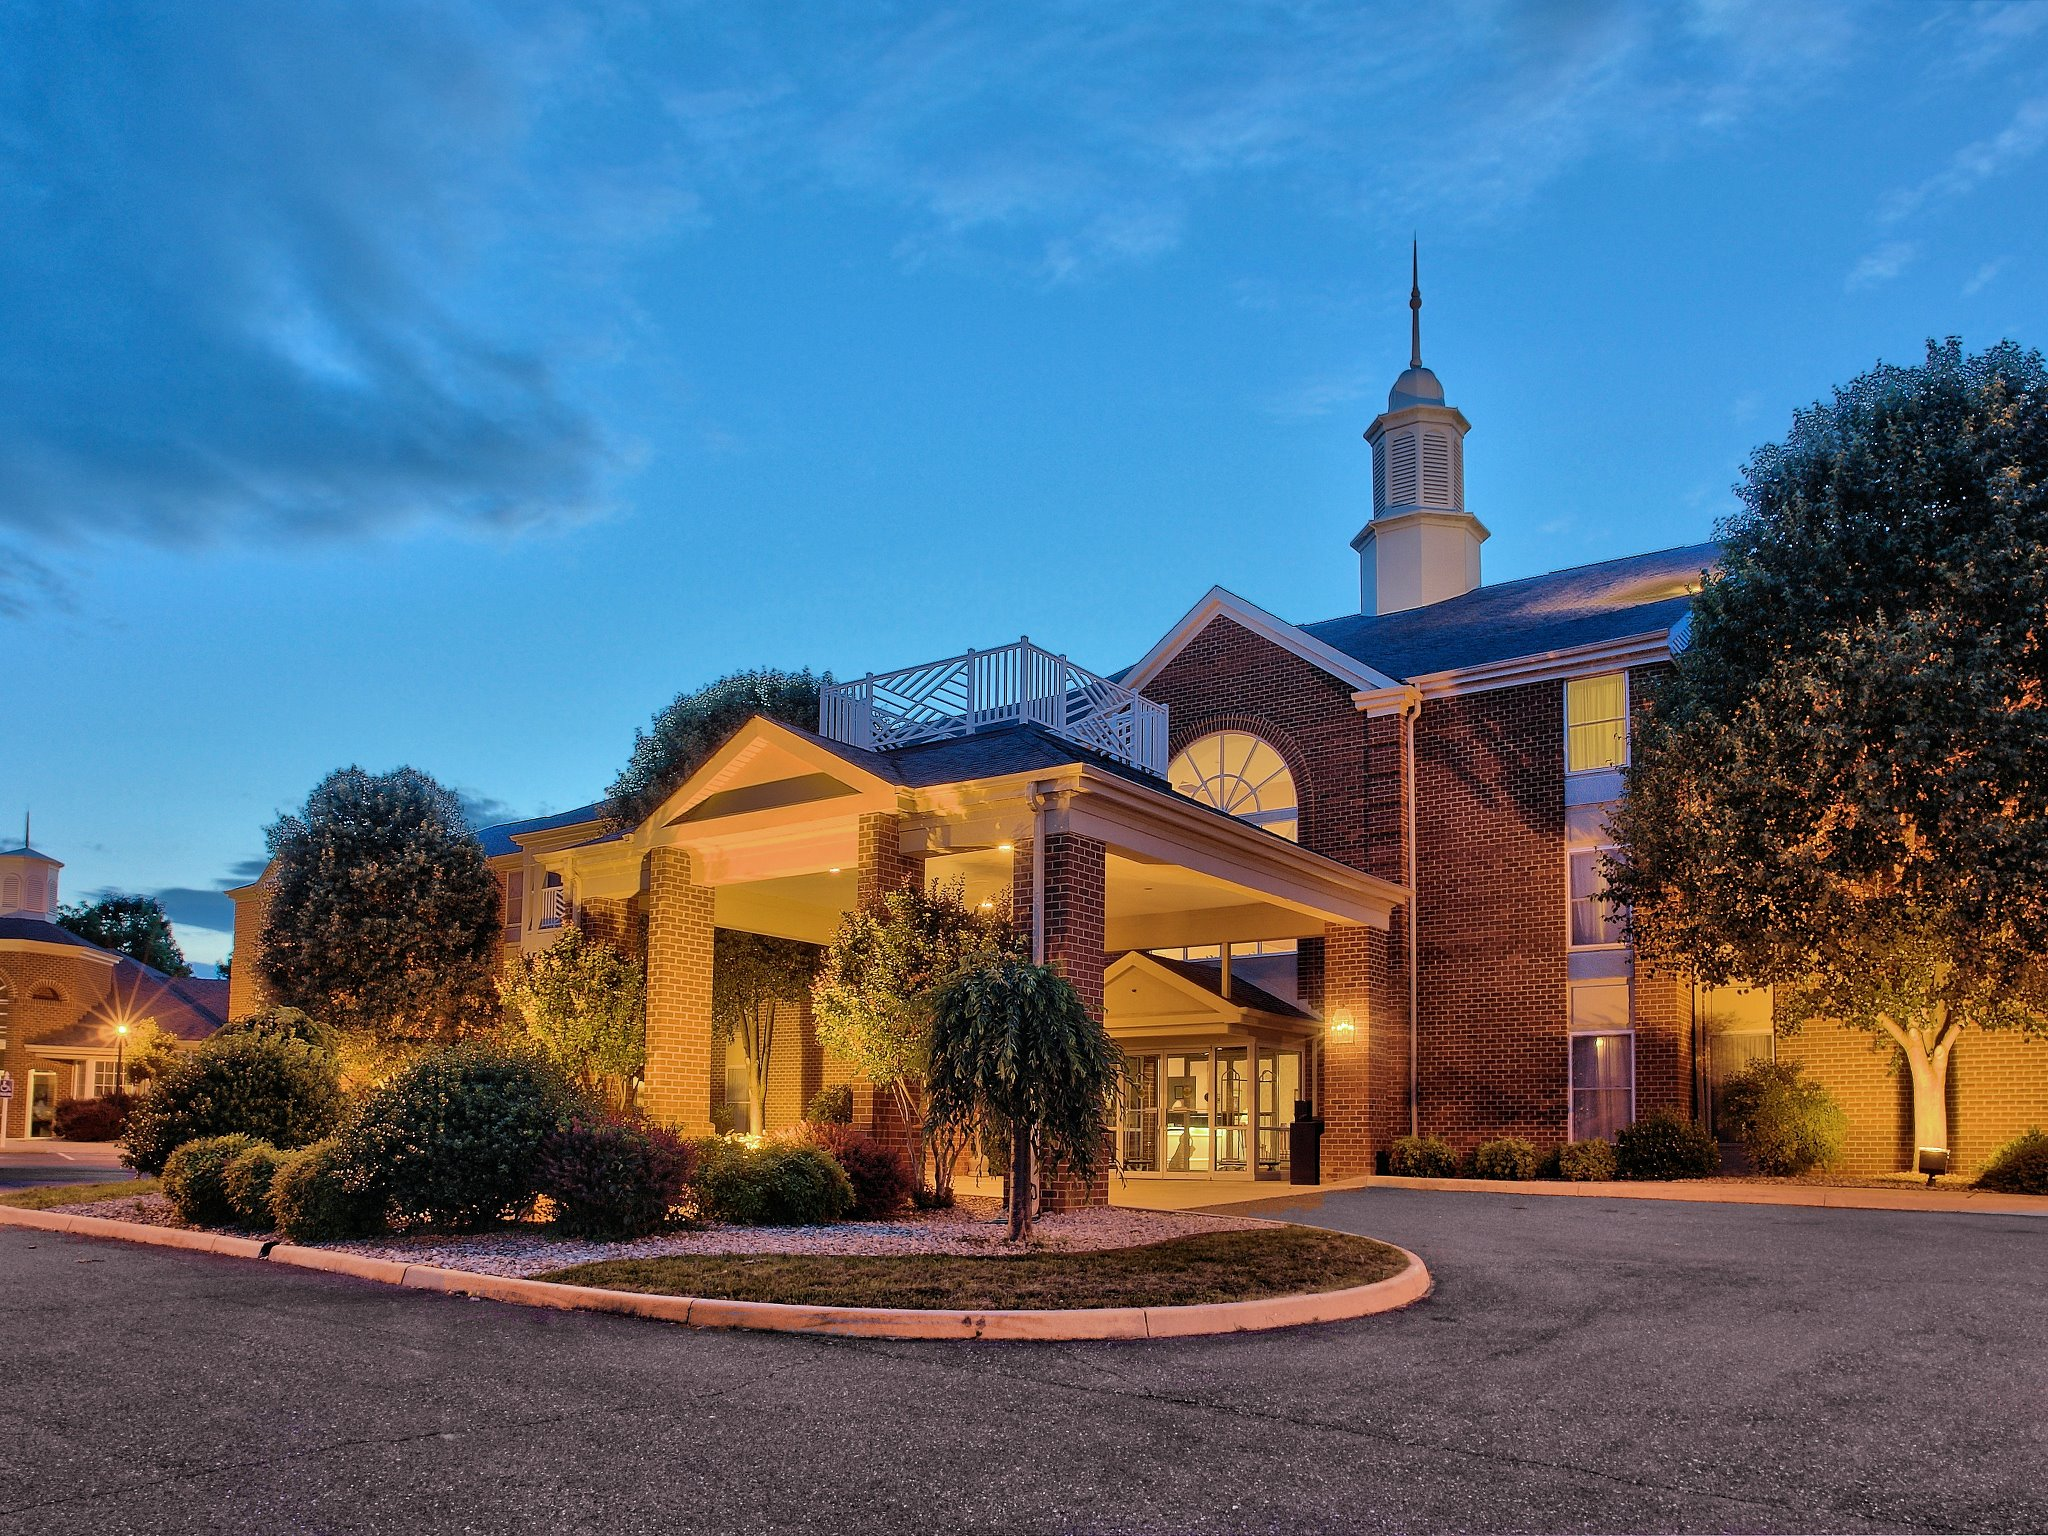 Lodging Information - THE HOST HOTEL: The Best Western Inn at Hunt Ridge (Just remodeled!)THE ADDRESS: 25 Willow Springs Road; Lexington, VA 24450CONTACT PHONE: (540) 464-1500FIMC ROOMS: $79.00/night for a king or double queen beds of a first come - first served basis.(Room discount code is FIMC79)